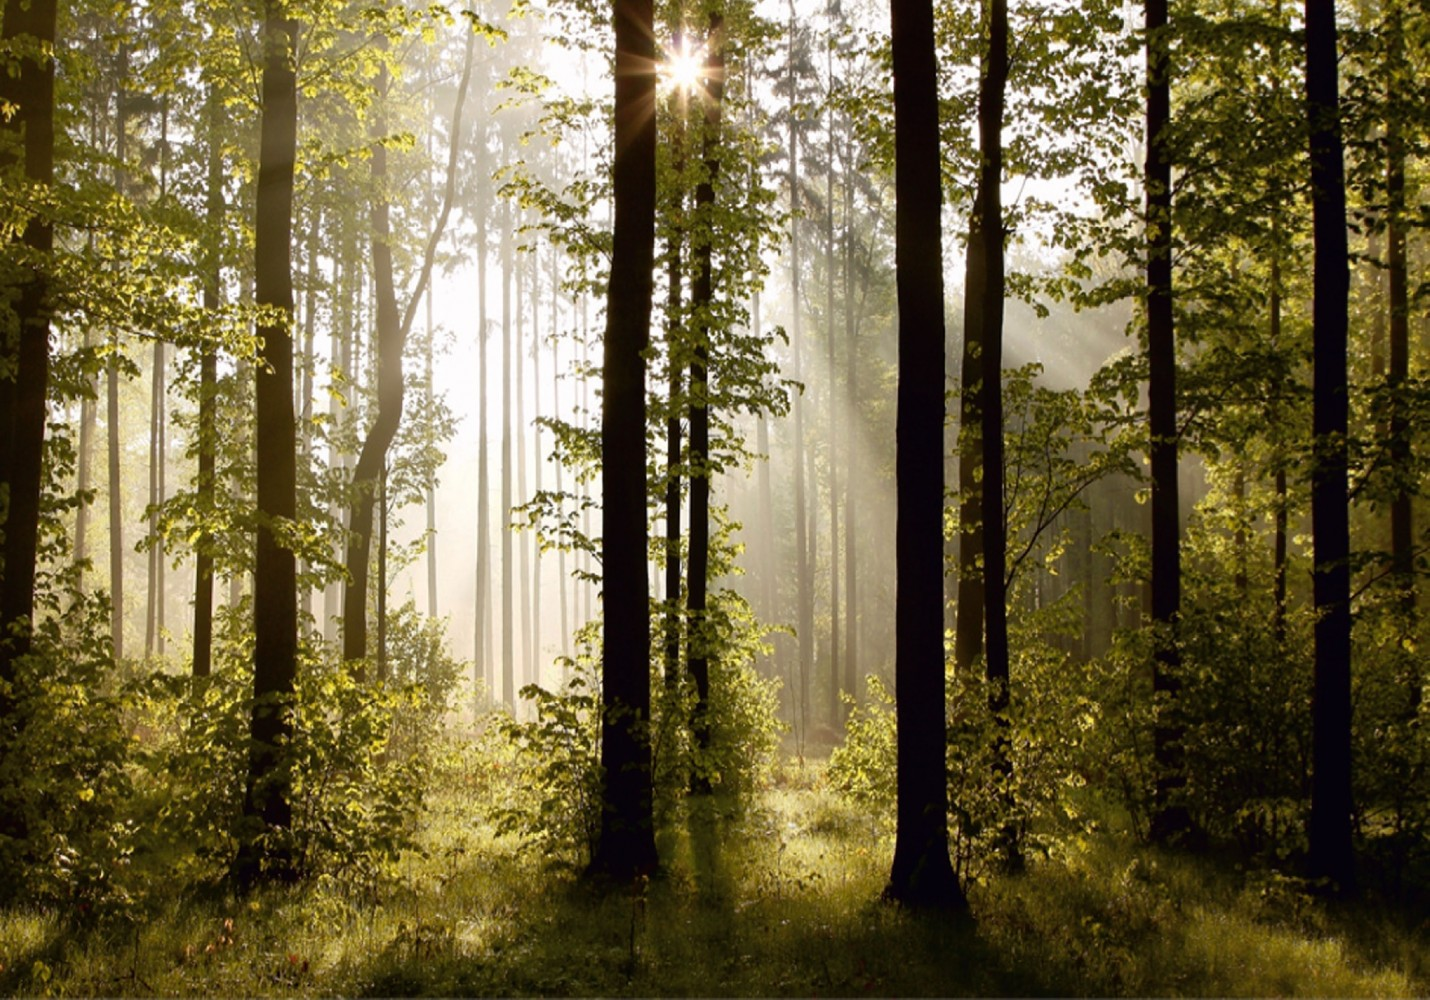 Wall mural wallpaper nature forest tree light show photo 360 cm x 254 1430x1000